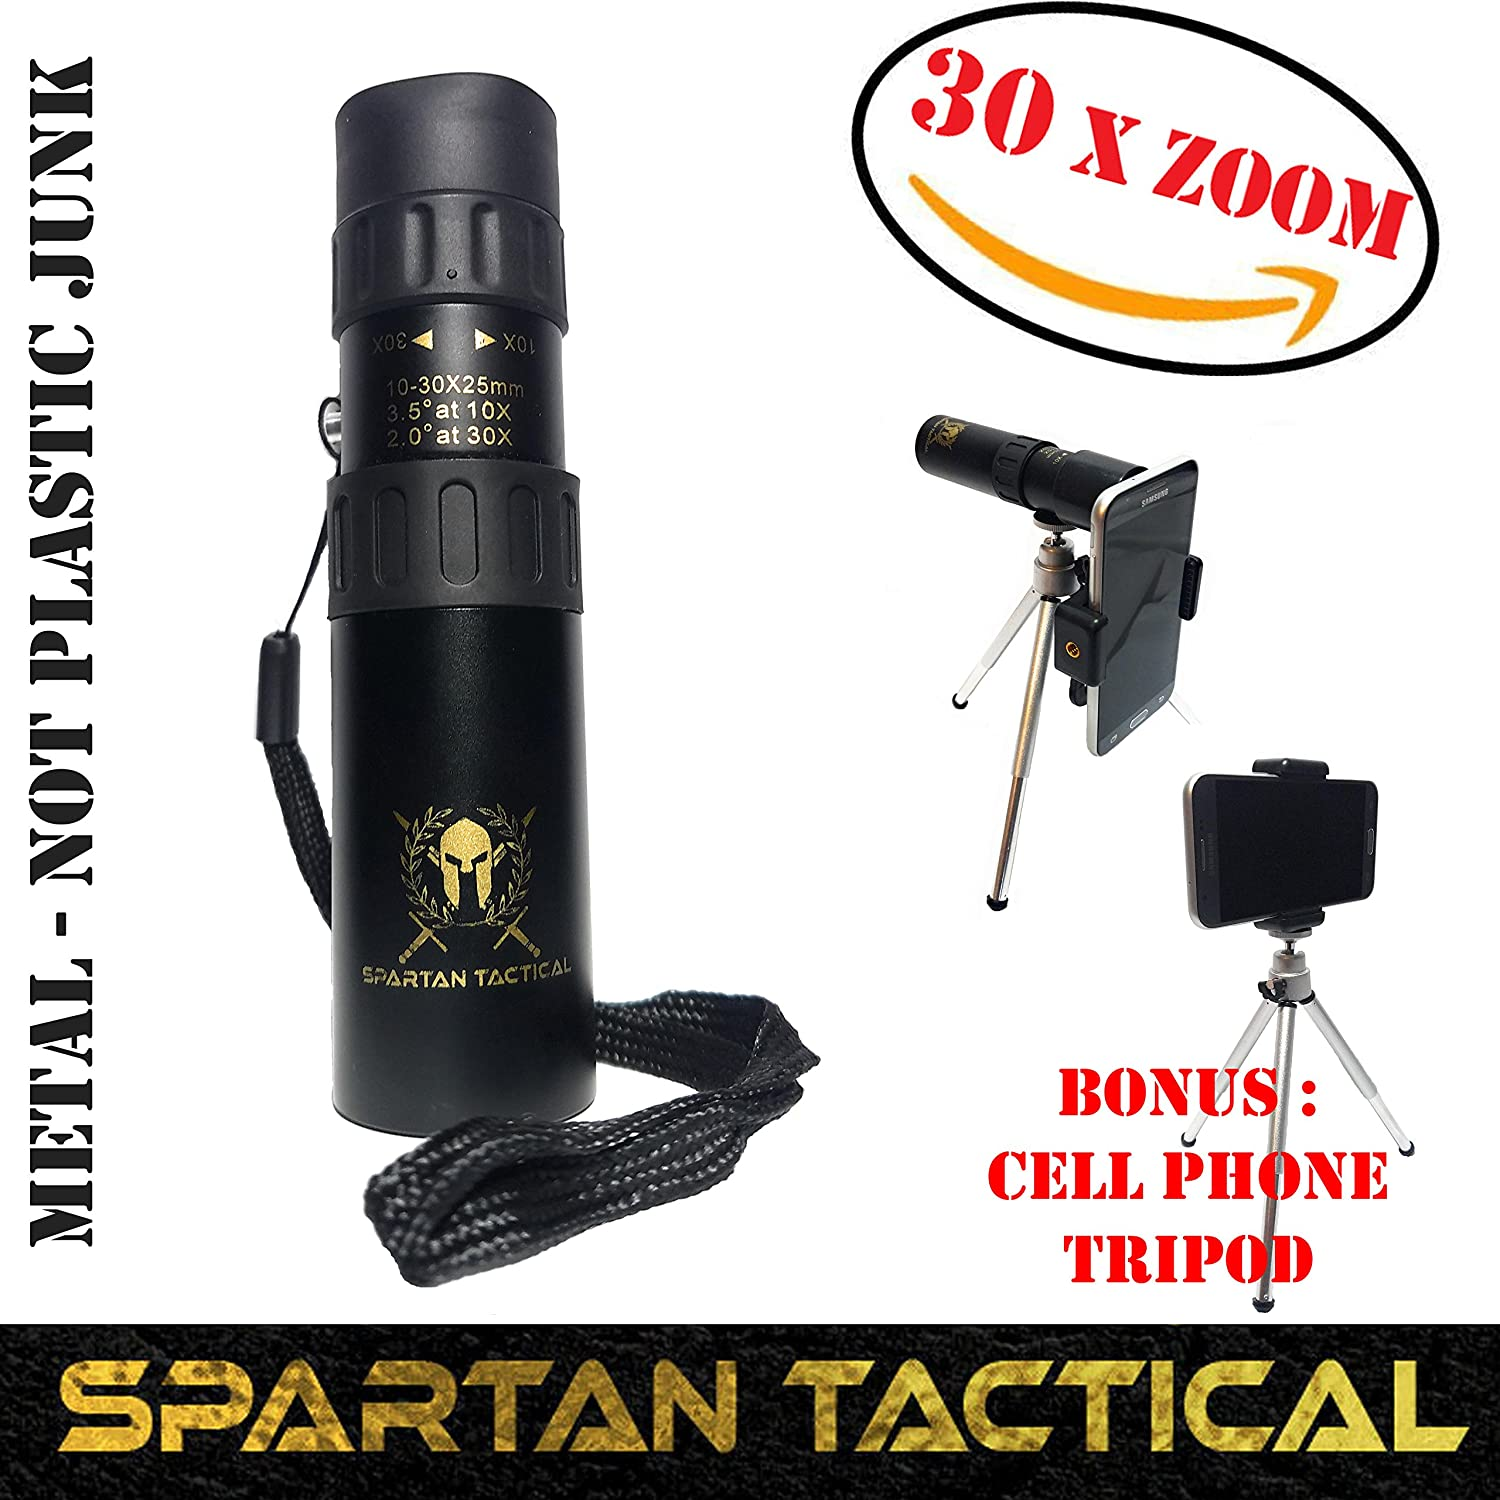 Spartan Tactical, Monoculars for adults, monocular telescope, zoom lens for smartphone, nikul high power monocular, BEST 30X ZOOM!!, Camping gear, spotting scope, cell phone tripod, Molon Labe